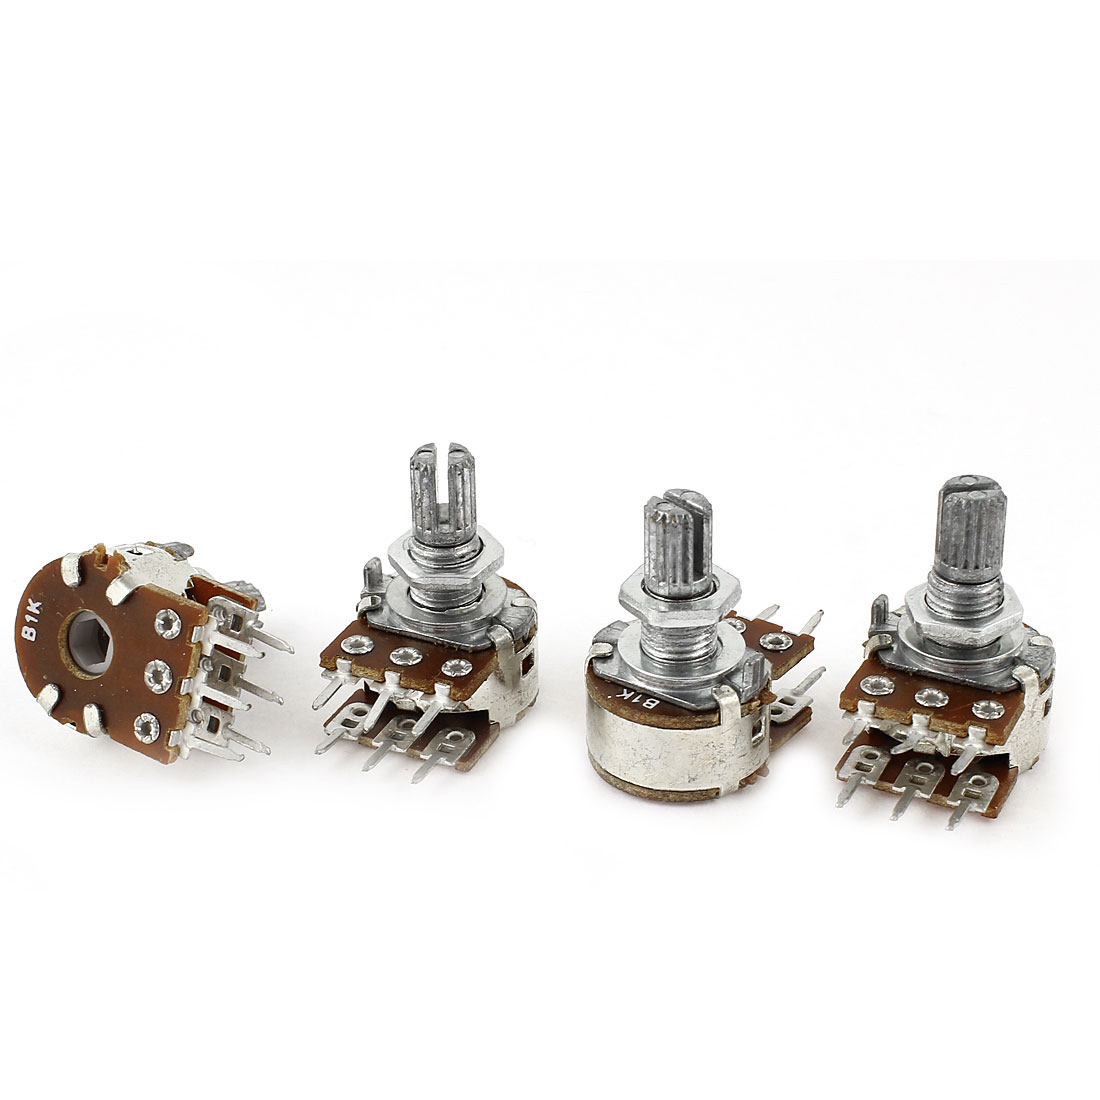 4Pcs 1K Ohm 15mm Shaft B Type Linear Dual Rotary Rotatable Taper Potentiometer